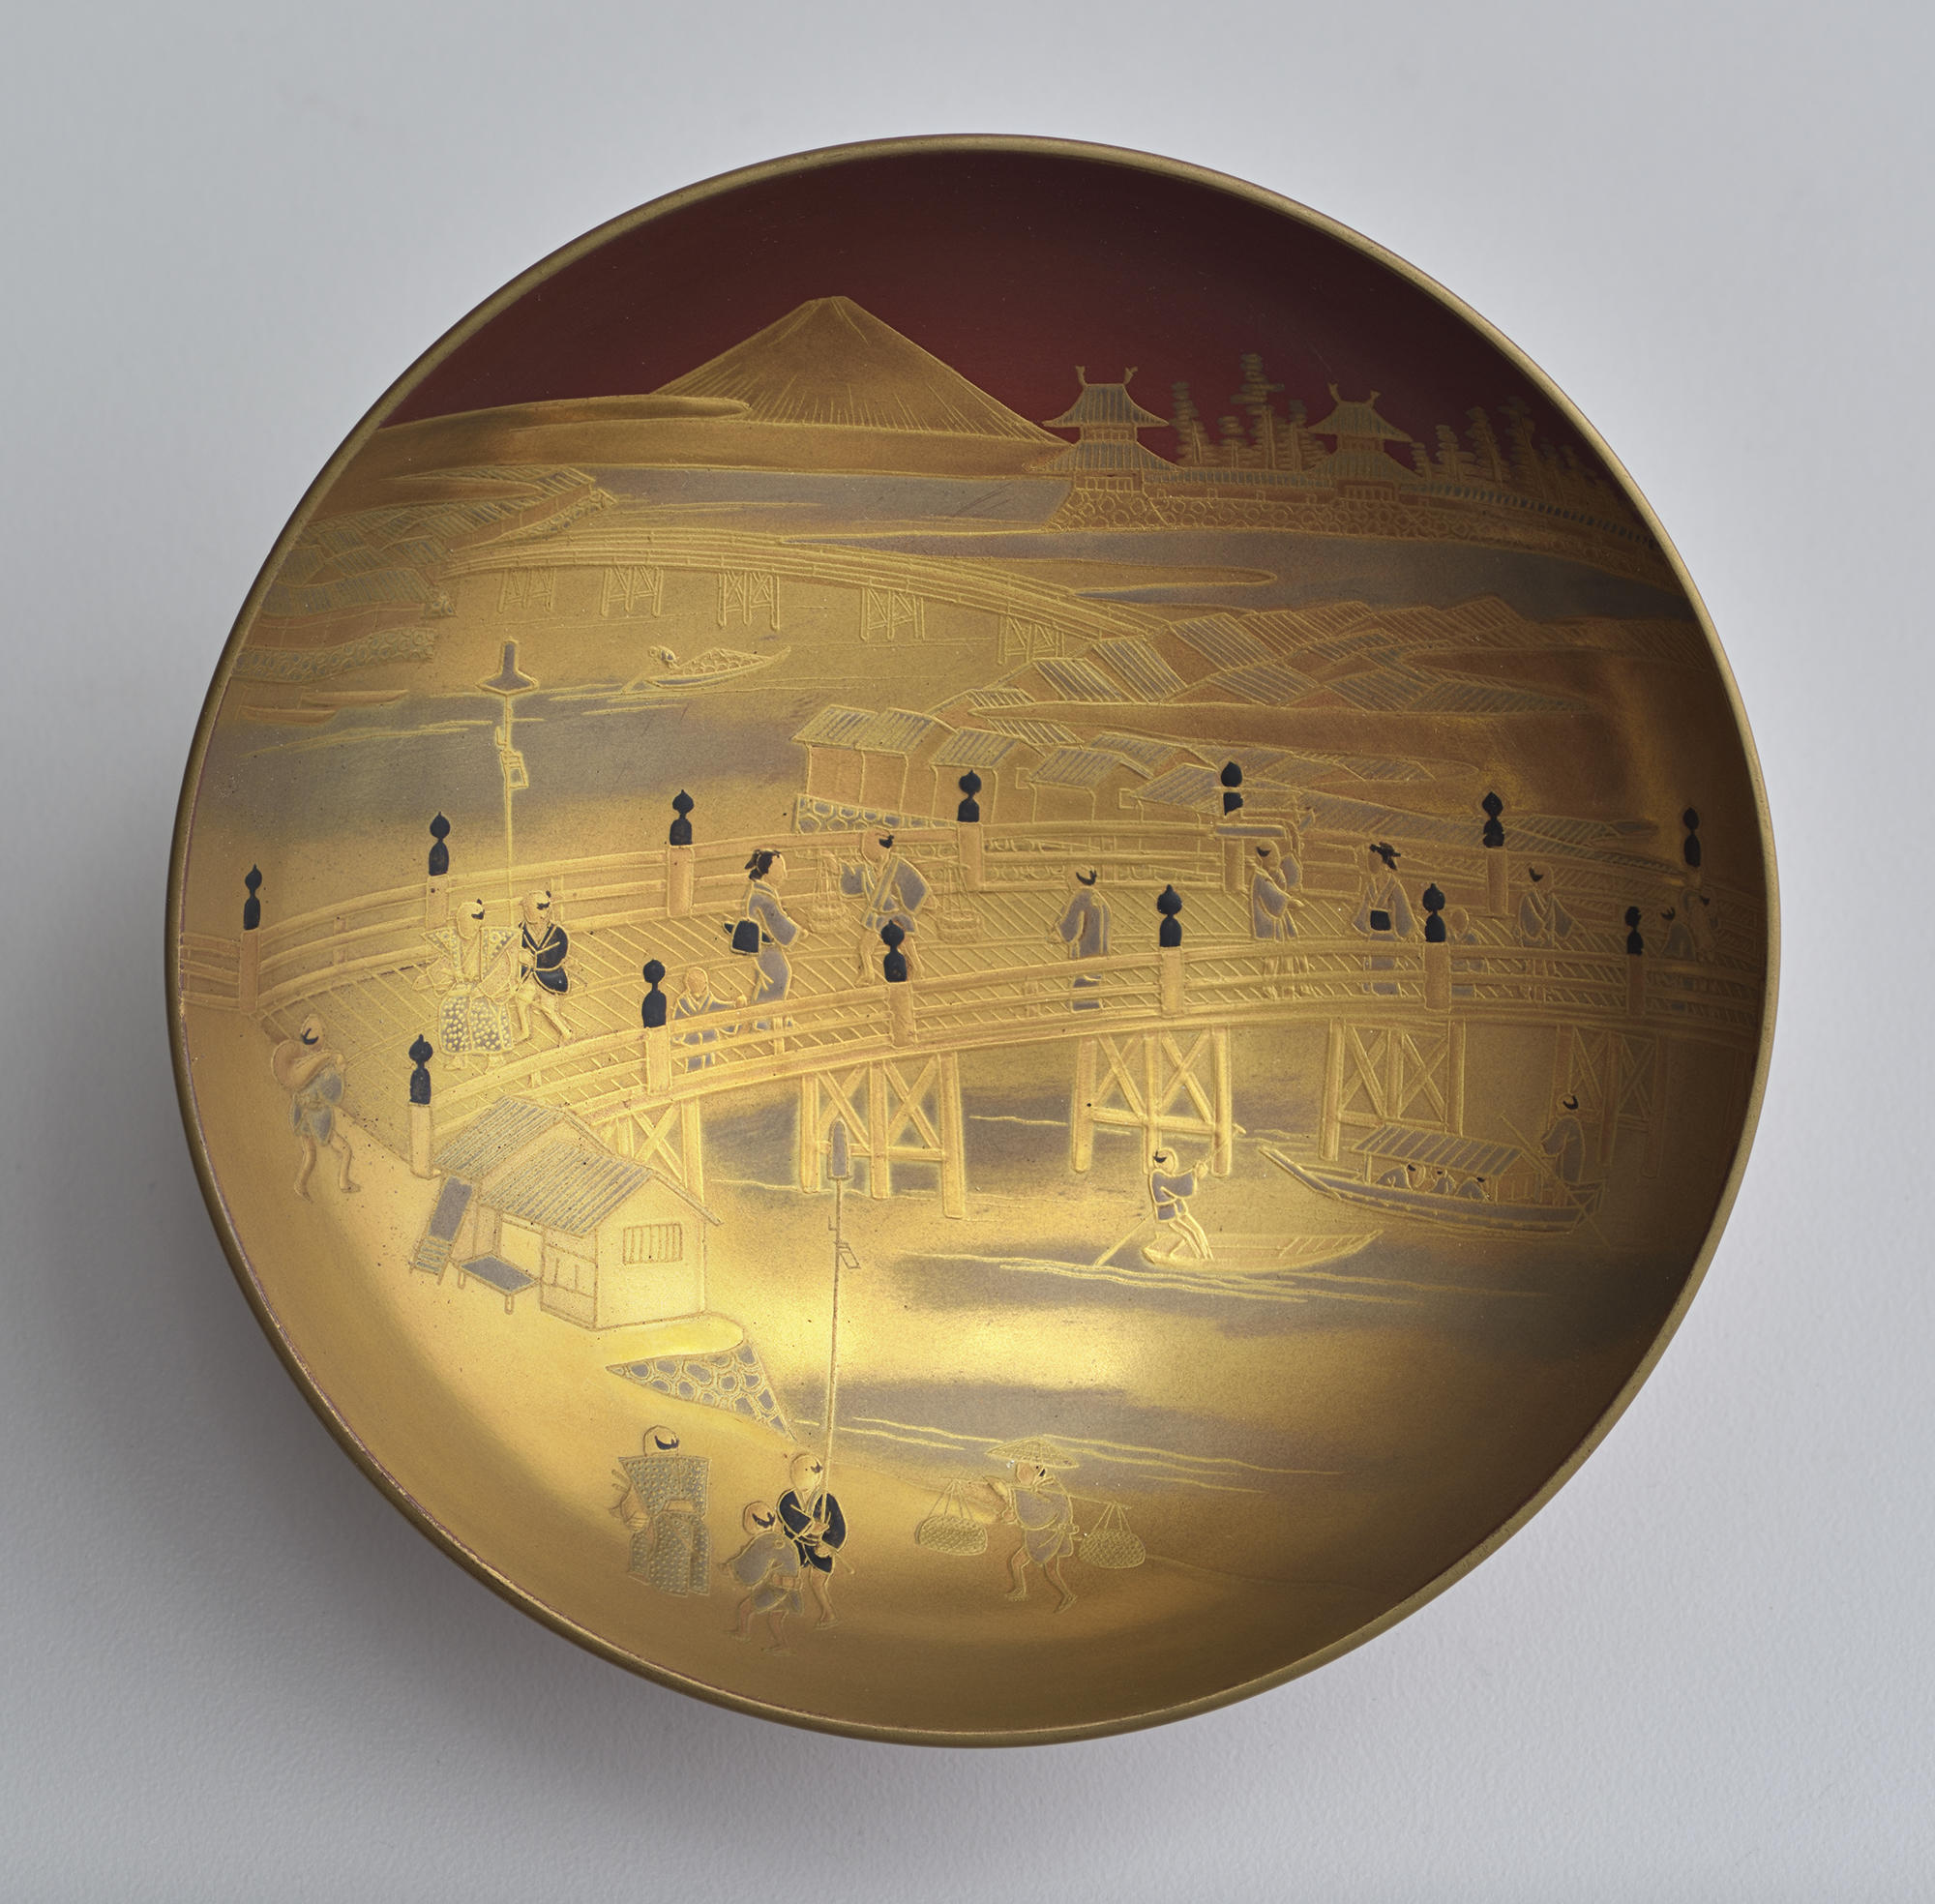 Japanese, Saké Cup: Nihon-bashi and Mt. Fuji, mid-19th century. Lacquered wood (hiramakié)